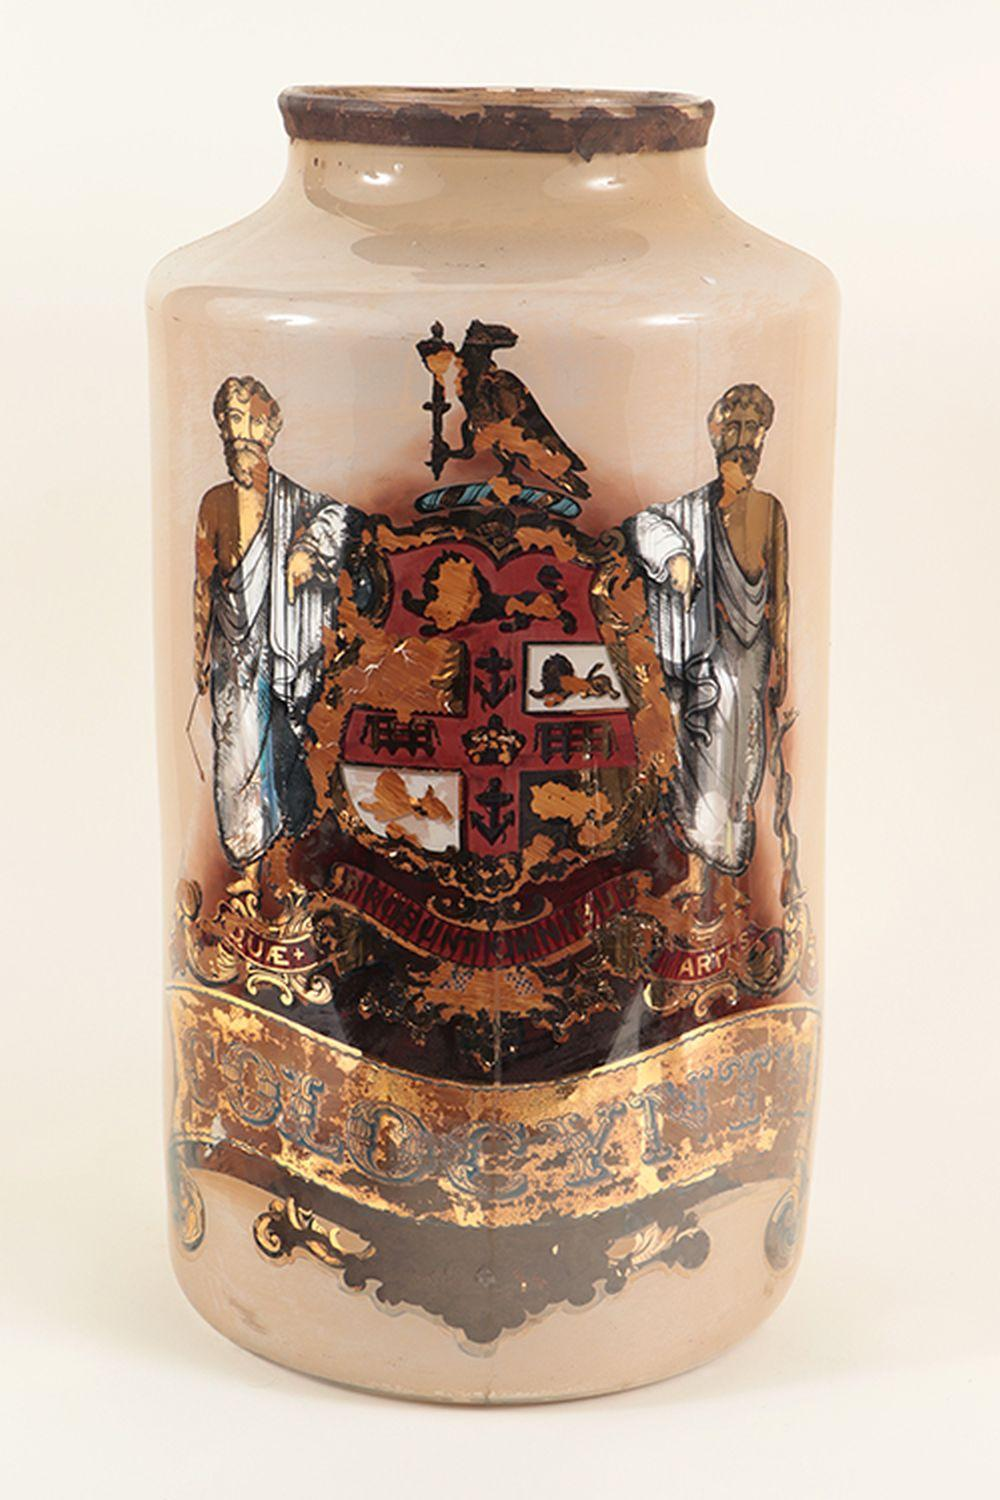 19TH C. REVERSE PAINTD GLASS APOTHECARY JAR